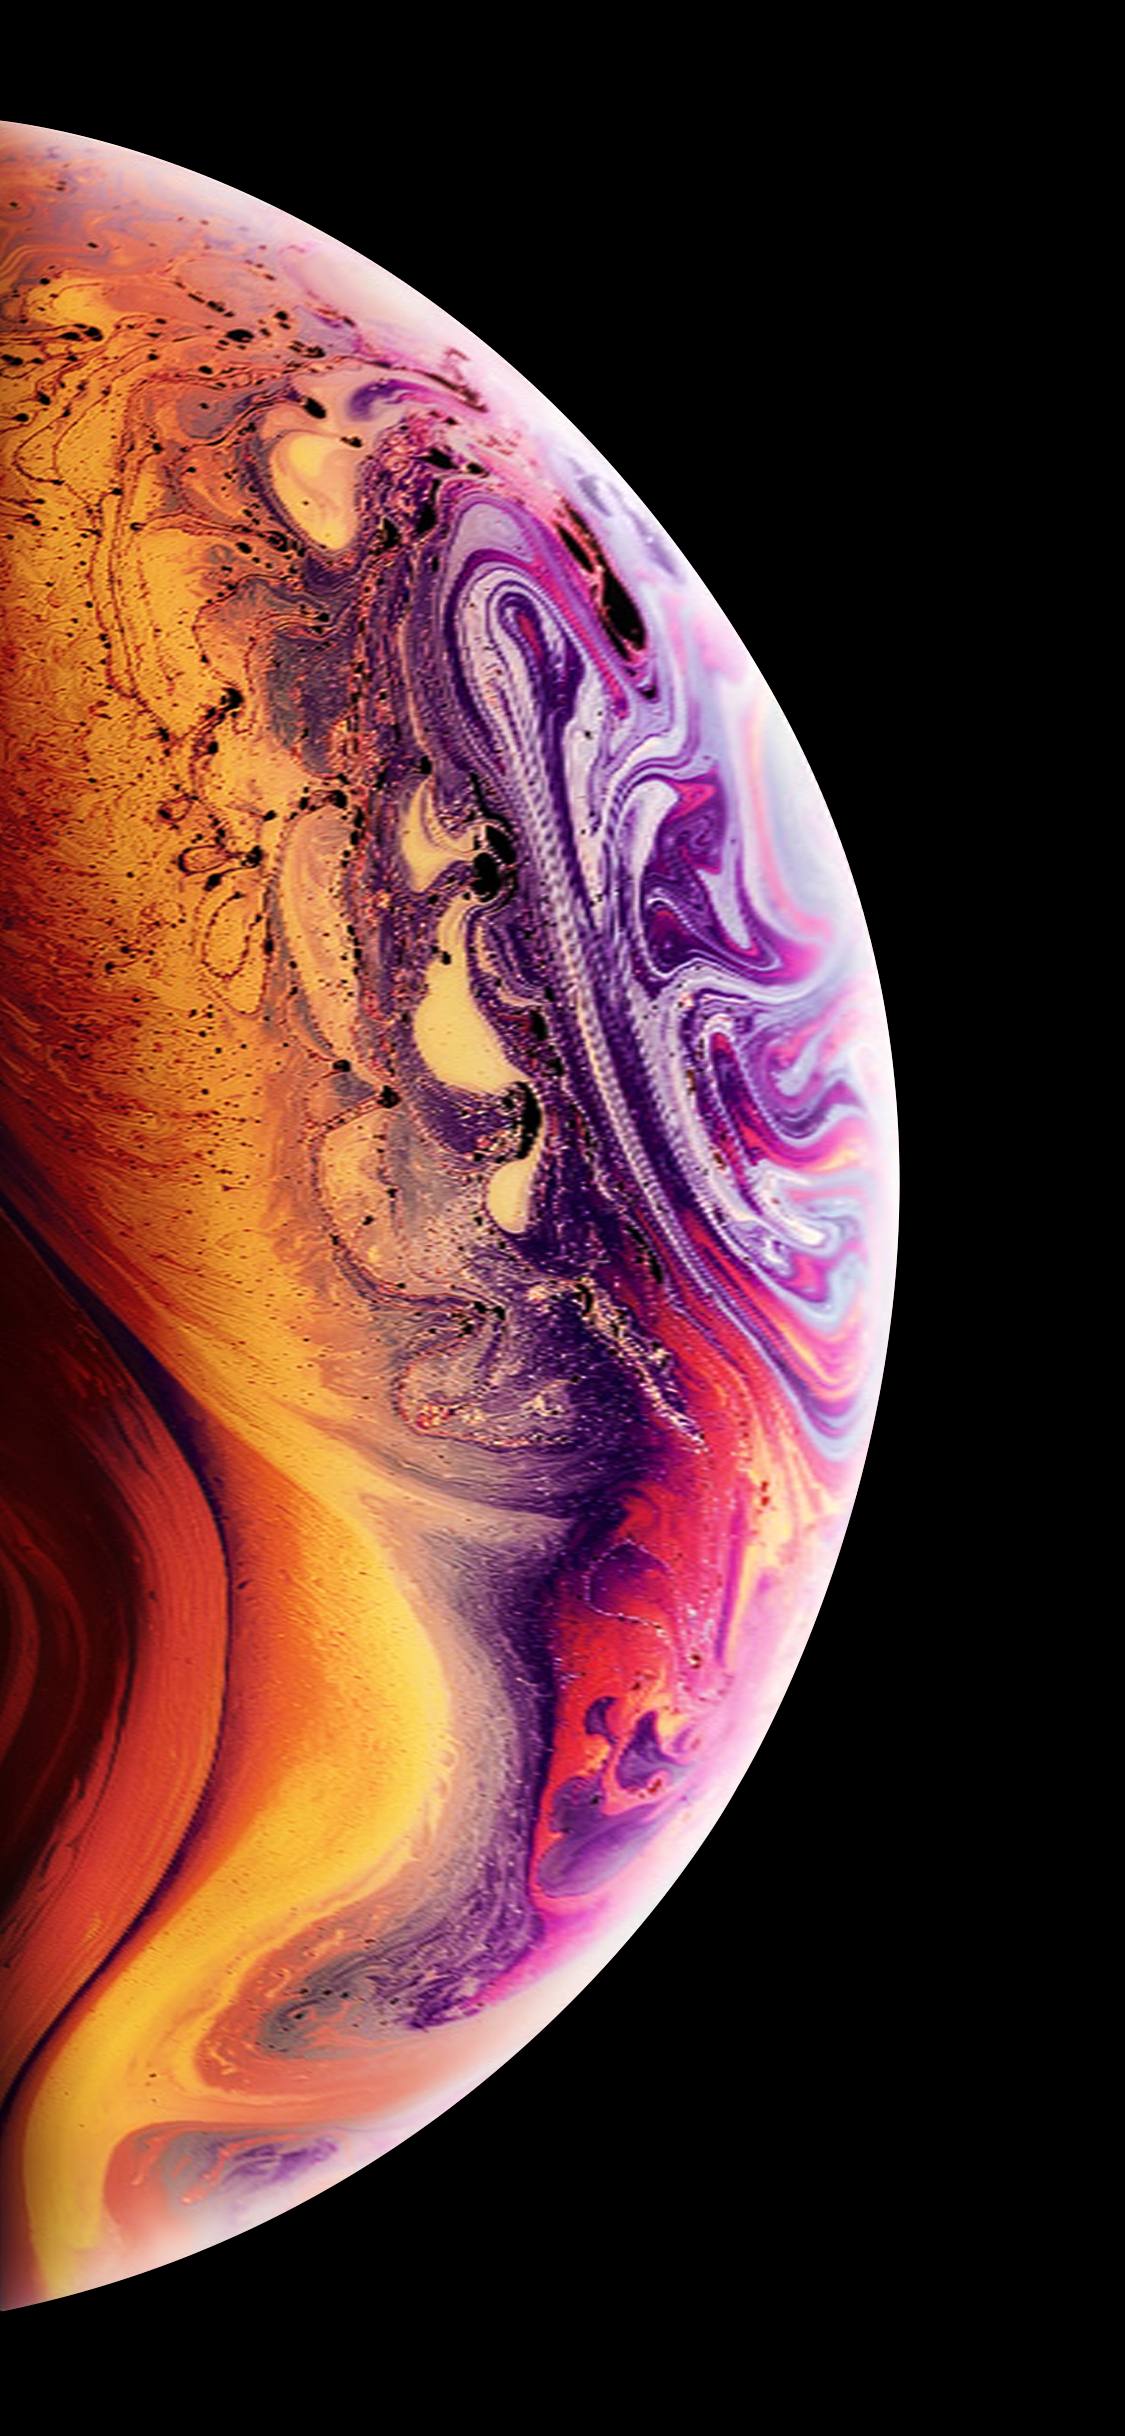 wallpaper iPhone XS 1